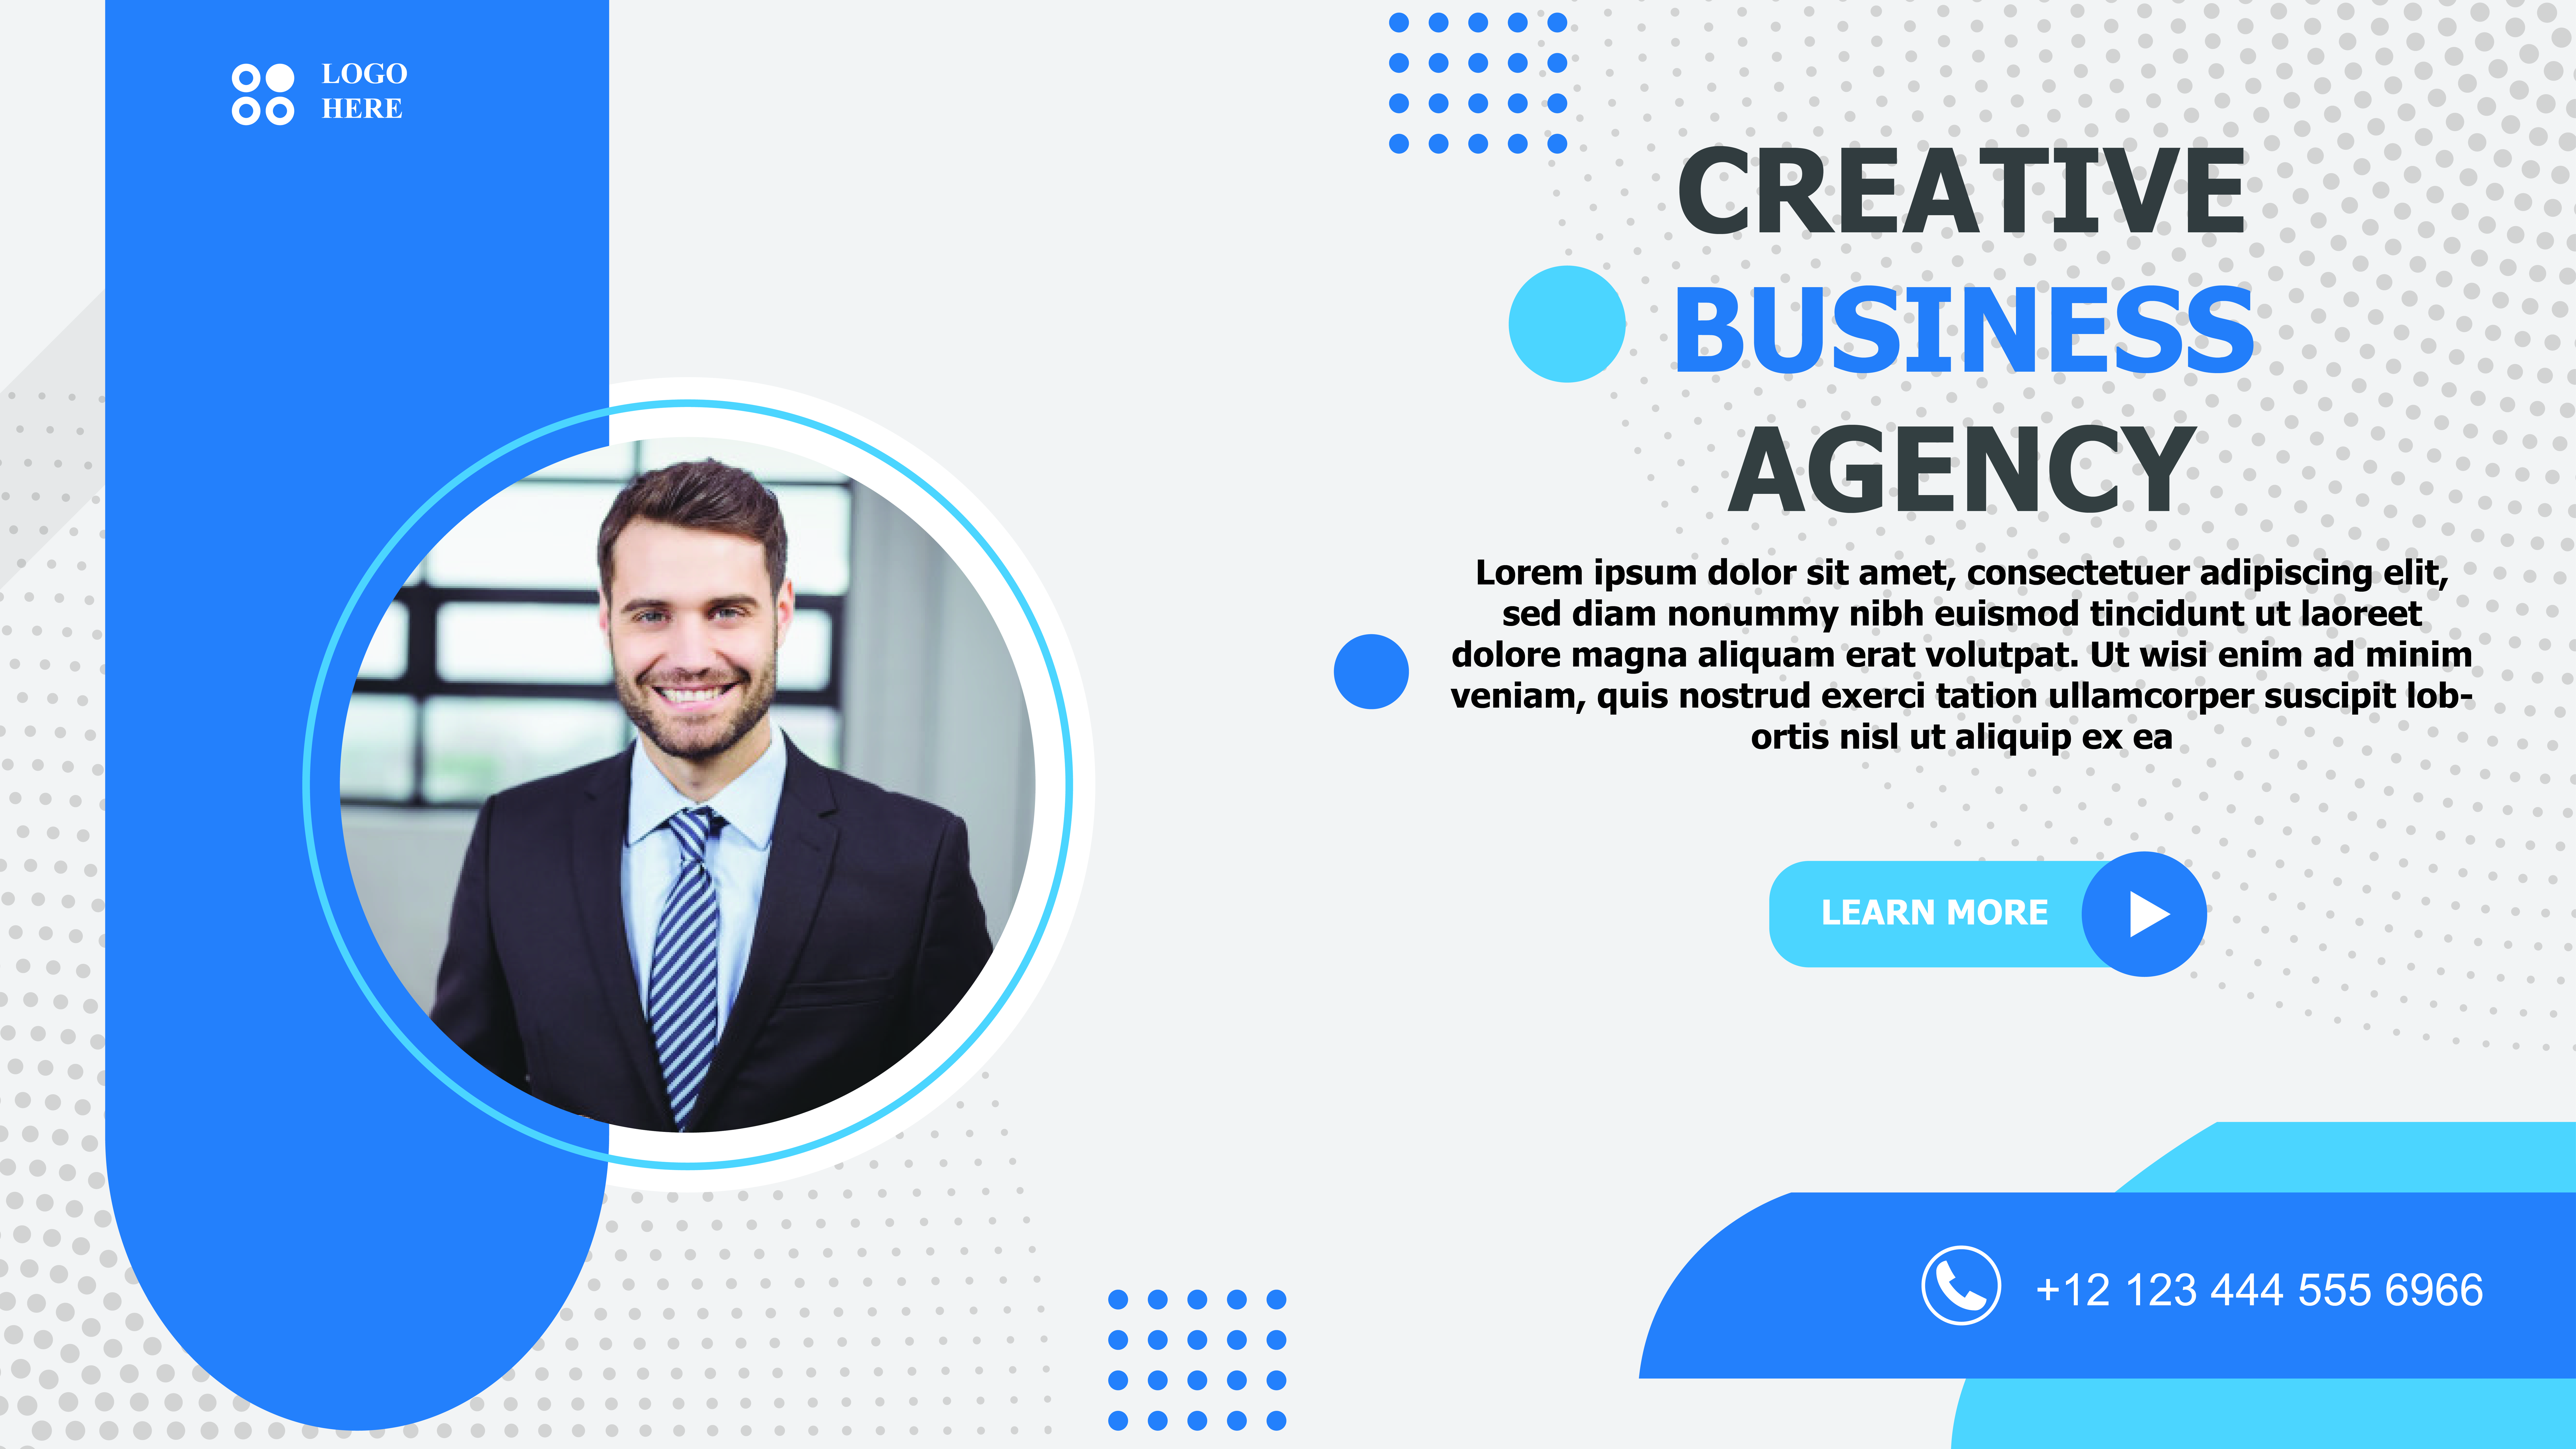 I will do professional banner template banner design for you within short times